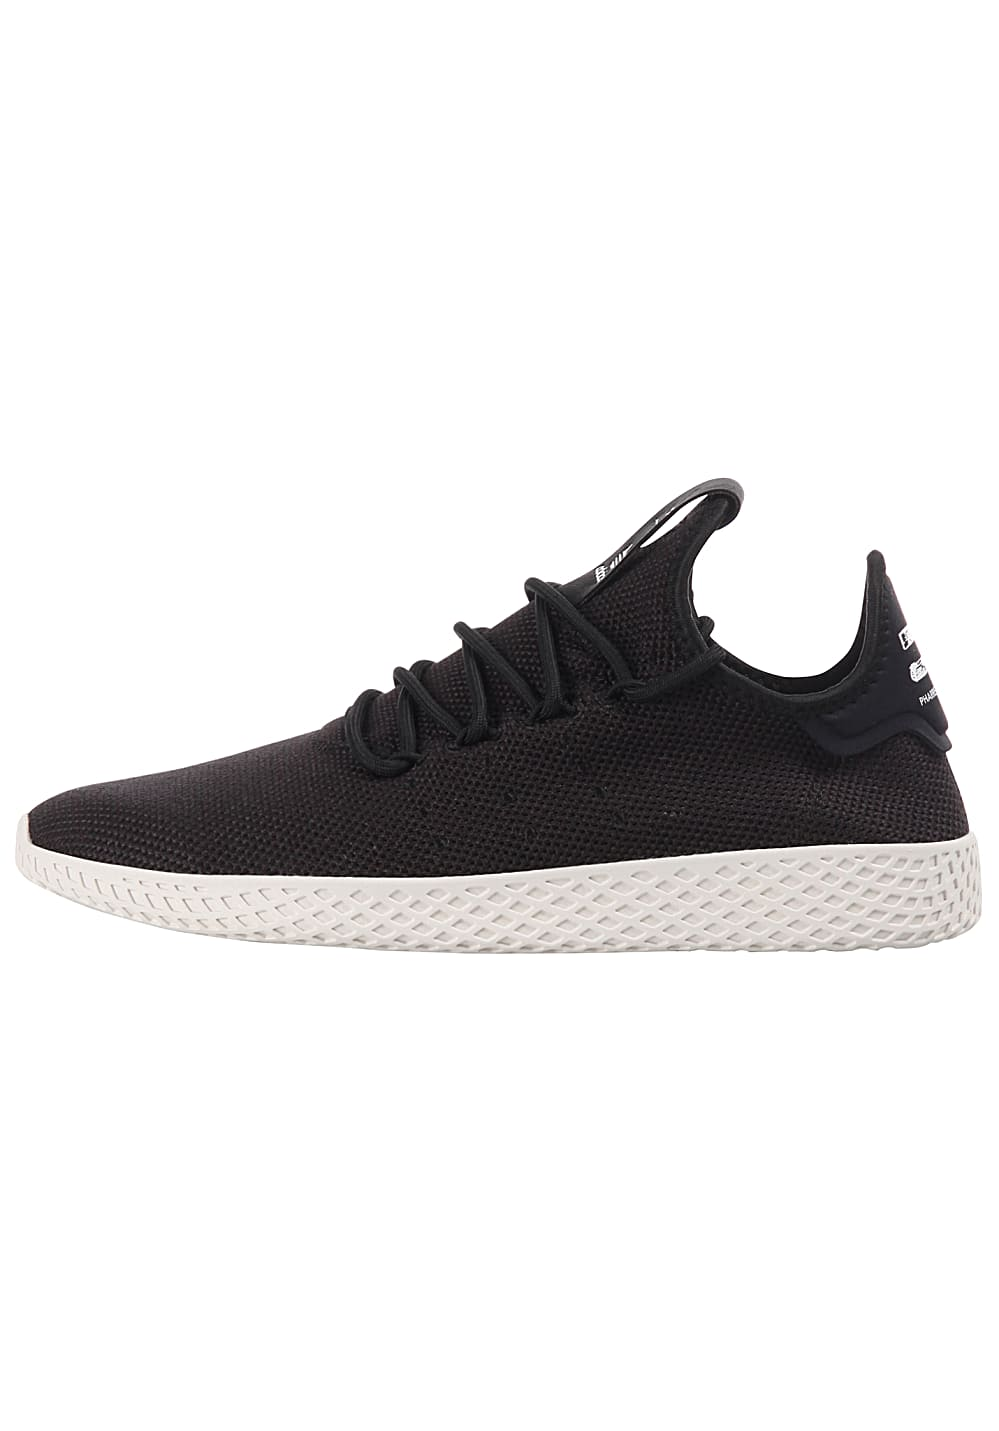 adidas Originals Pharrell Williams Tennis HU - Sneaker für Herren ...